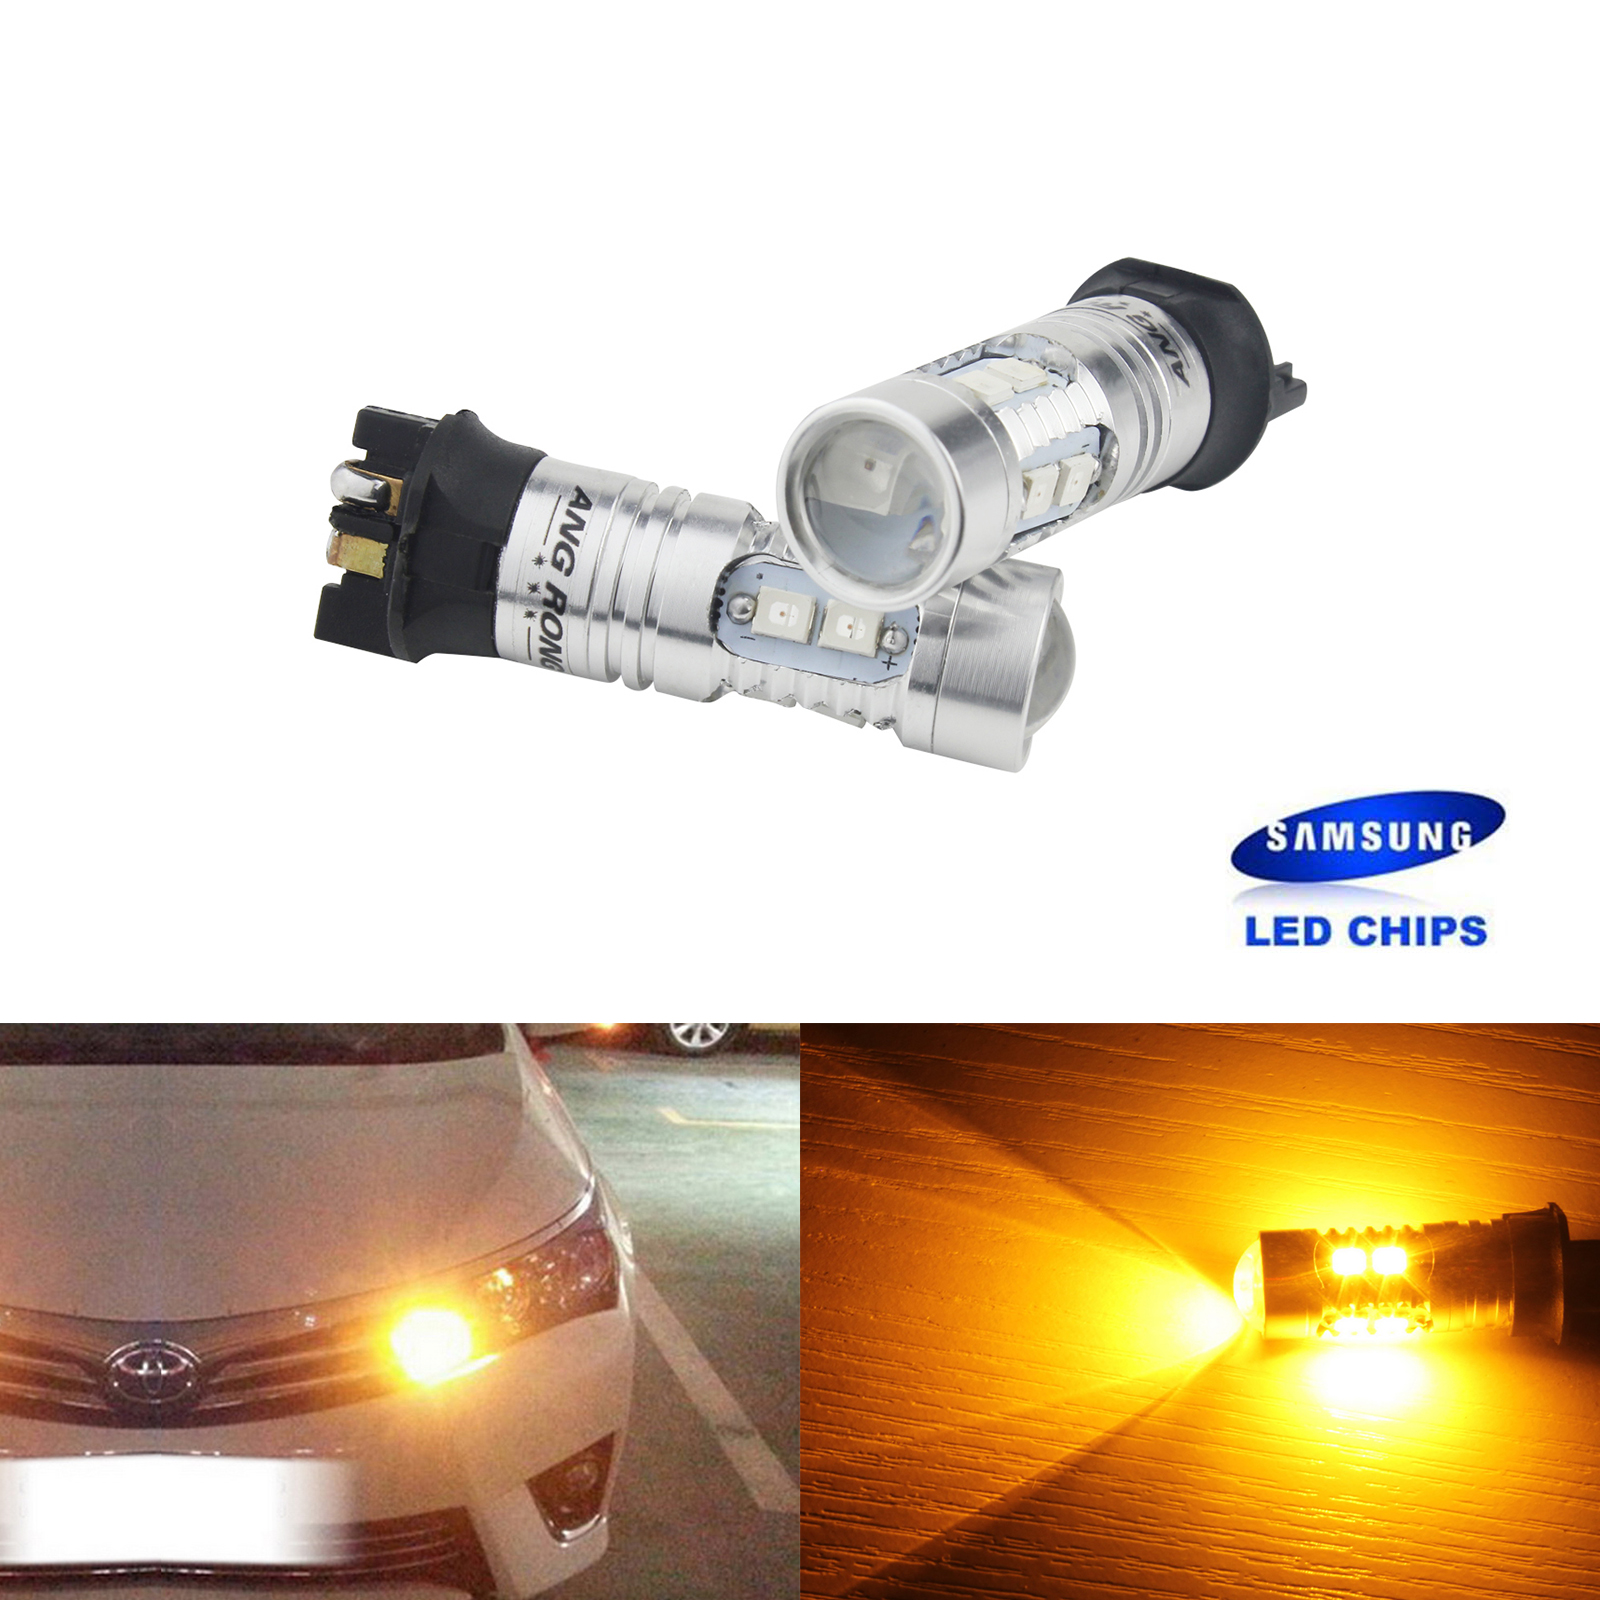 ANGRONG 2x Amber <font><b>PW24W</b></font> SAMSUNG LED Turn Signal Daytime Light For Audi Q3 A5 8T A4 8K A3 8V BMW Citron Peugeot Skoda VW Volvo image